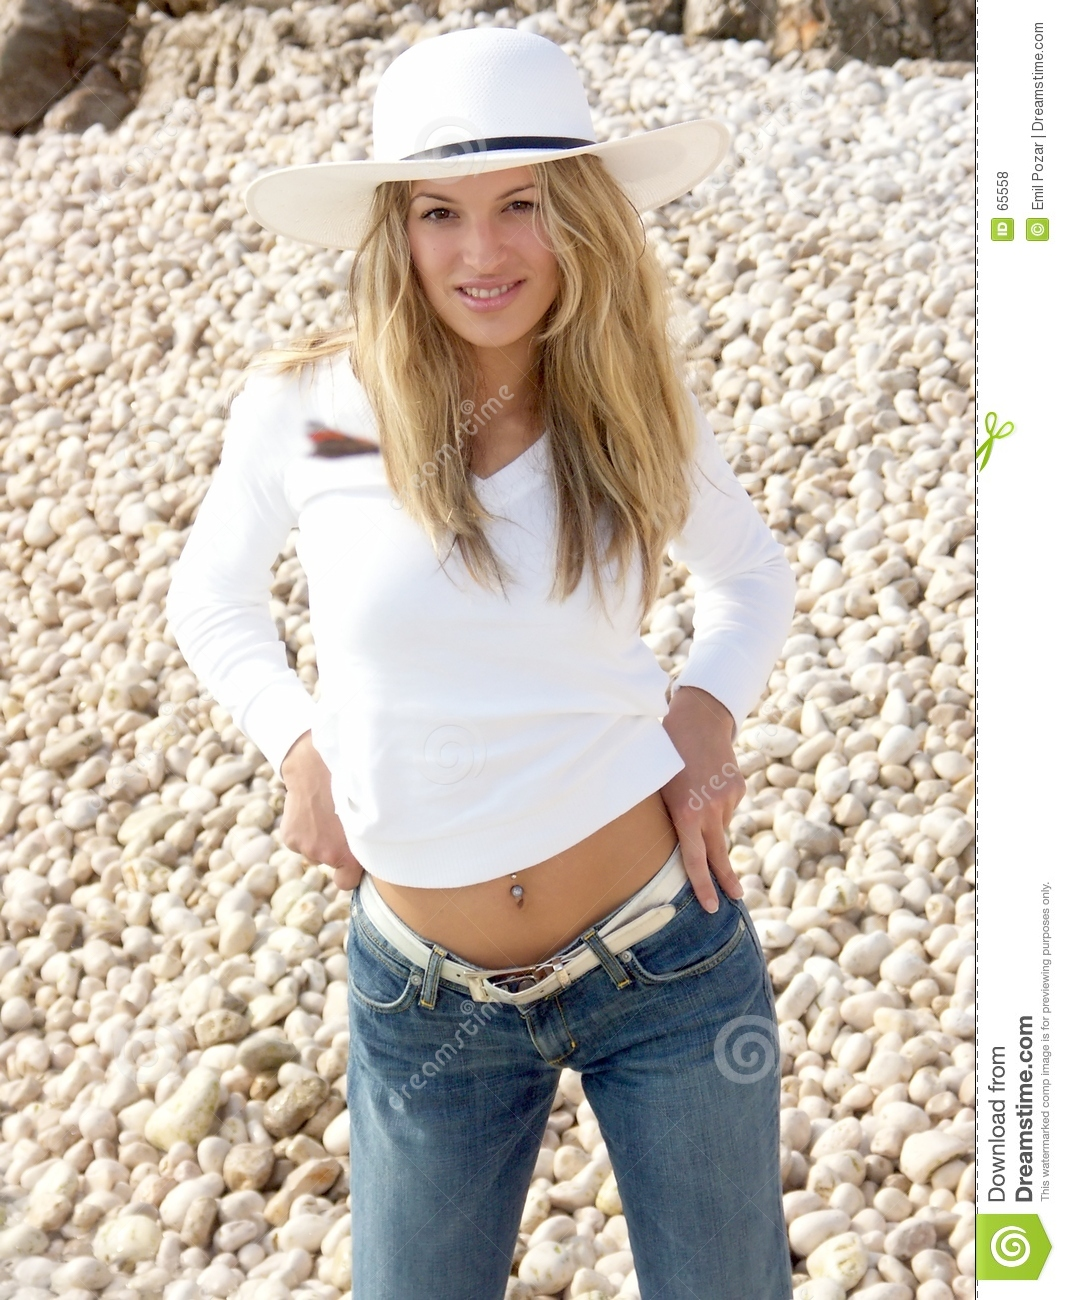 Download Fille Blonde Et Ses Jeans Serrés Photo stock - Image du féminin, vêtu: 65558